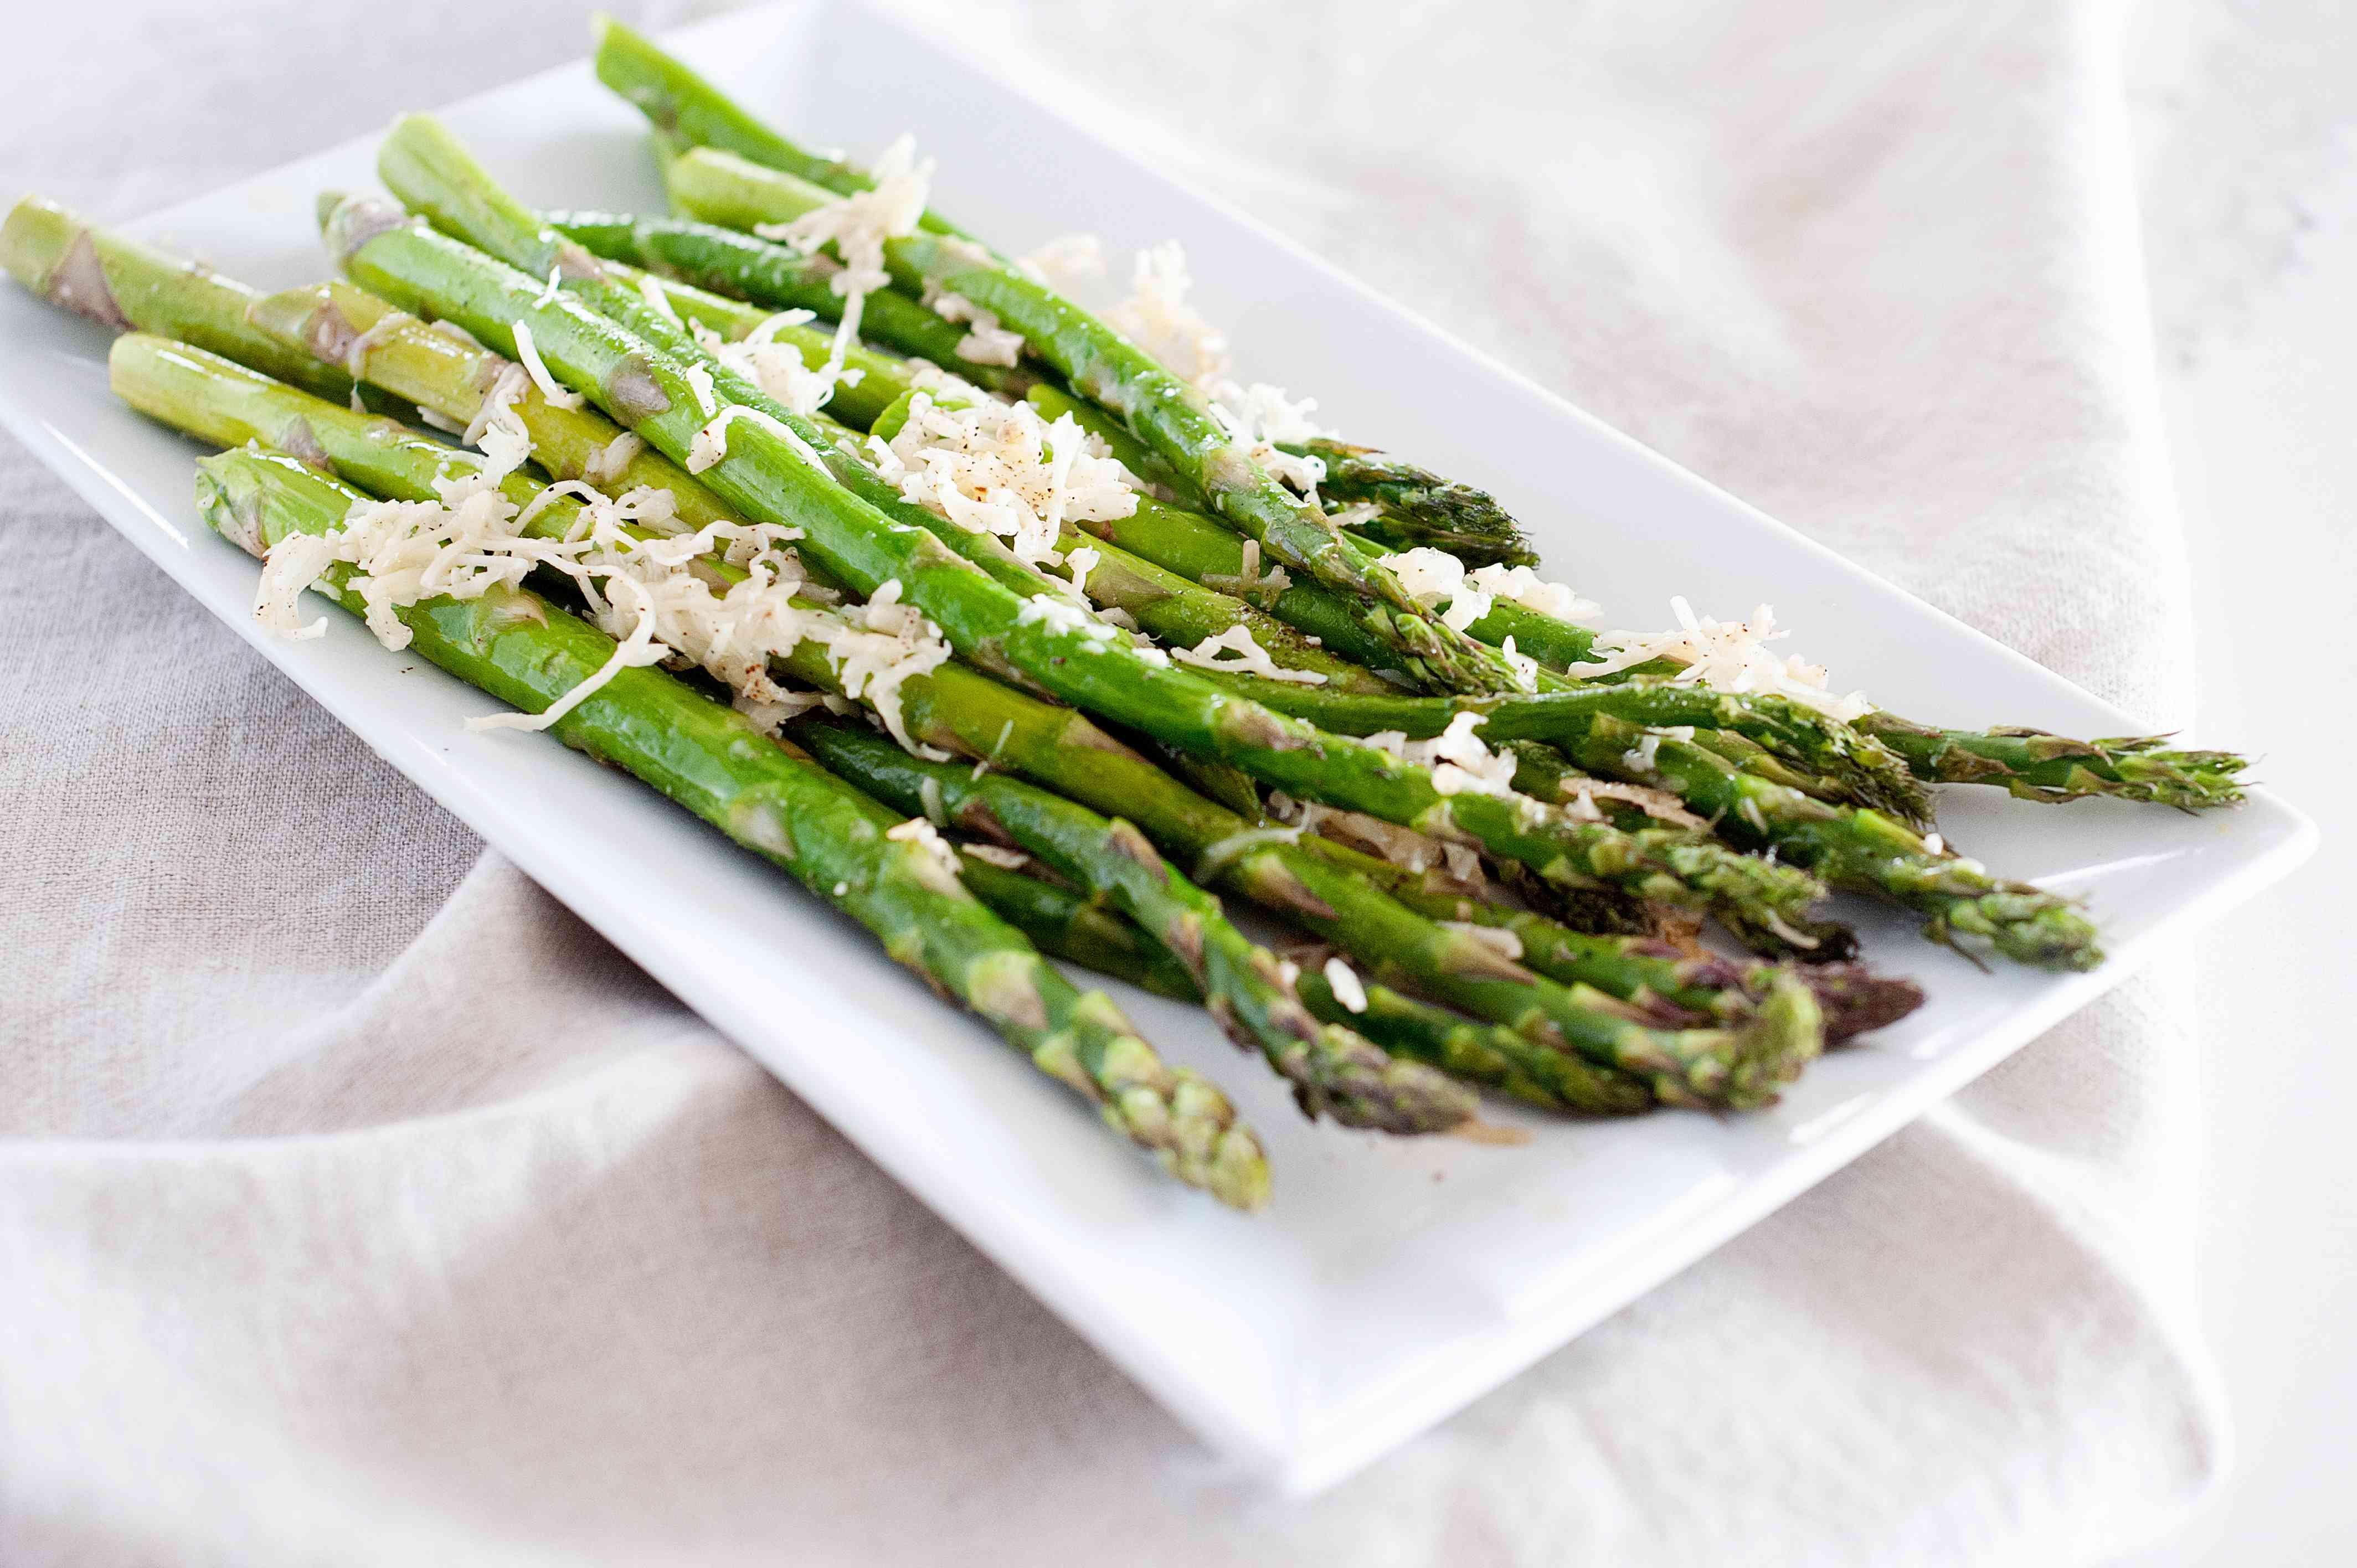 A platter of oven roasted asparagus.